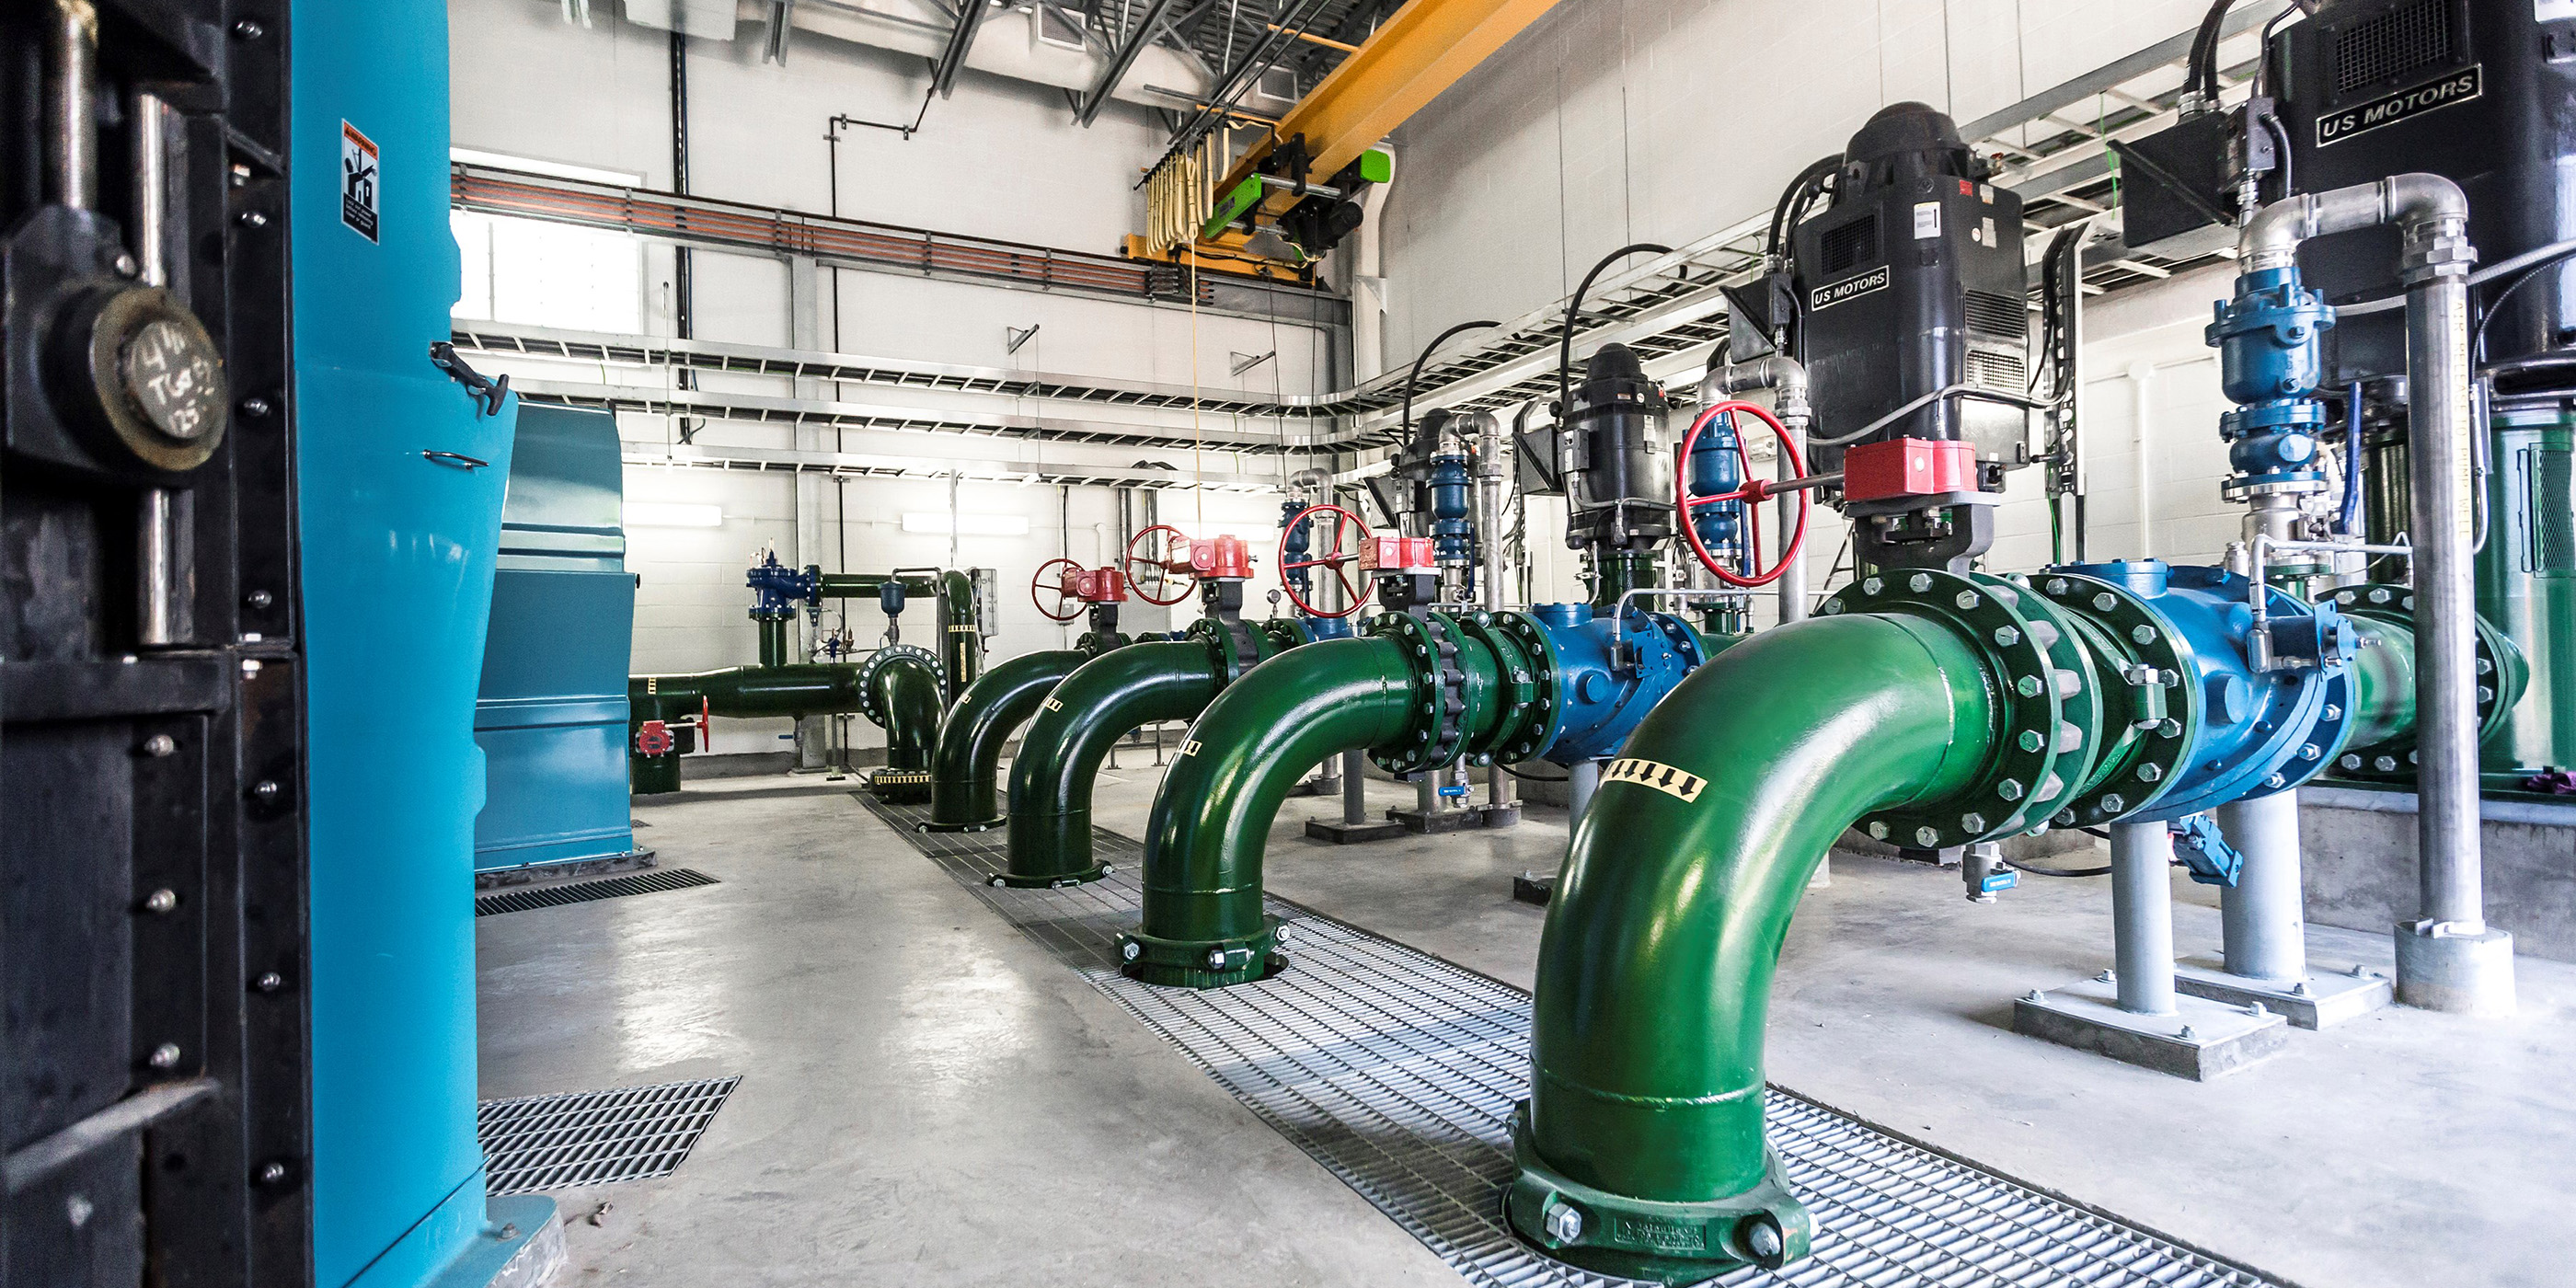 TAP IN - ATCO's Heartland Industrial Water System